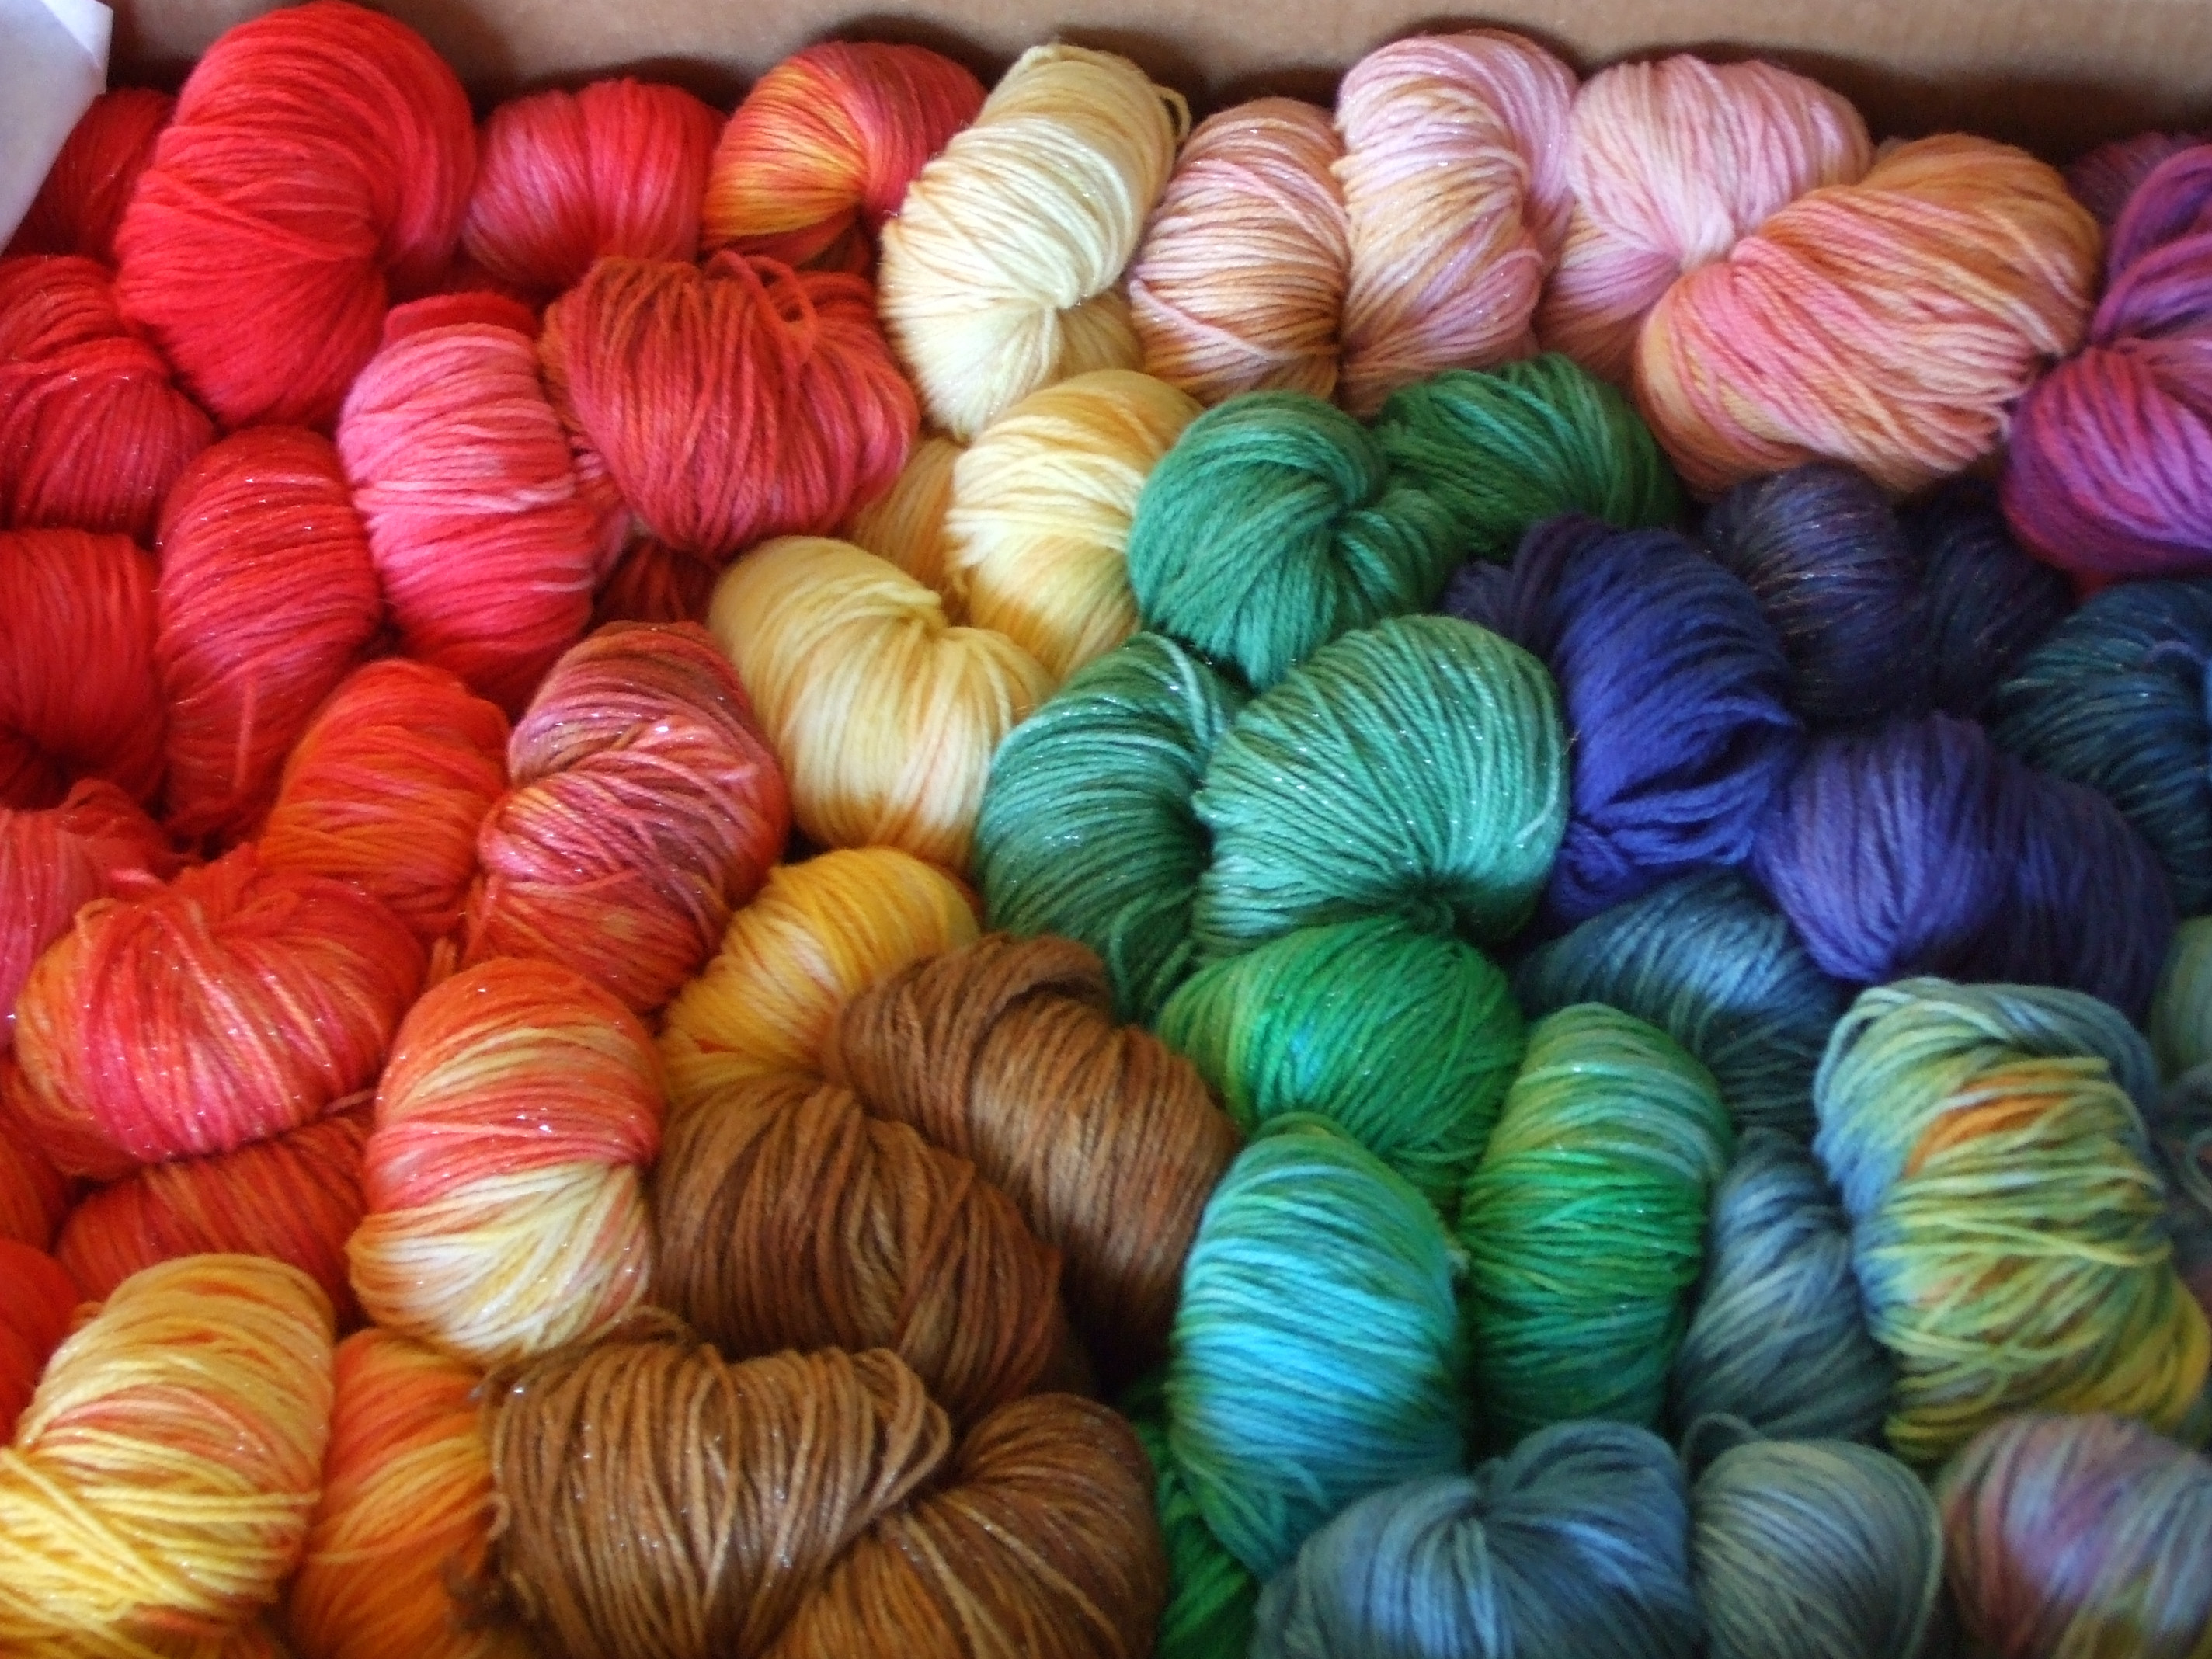 Yarn Awesome Knit and Crochet Ideas Inspirations On Pinterest Of Fresh 42 Pics Yarn